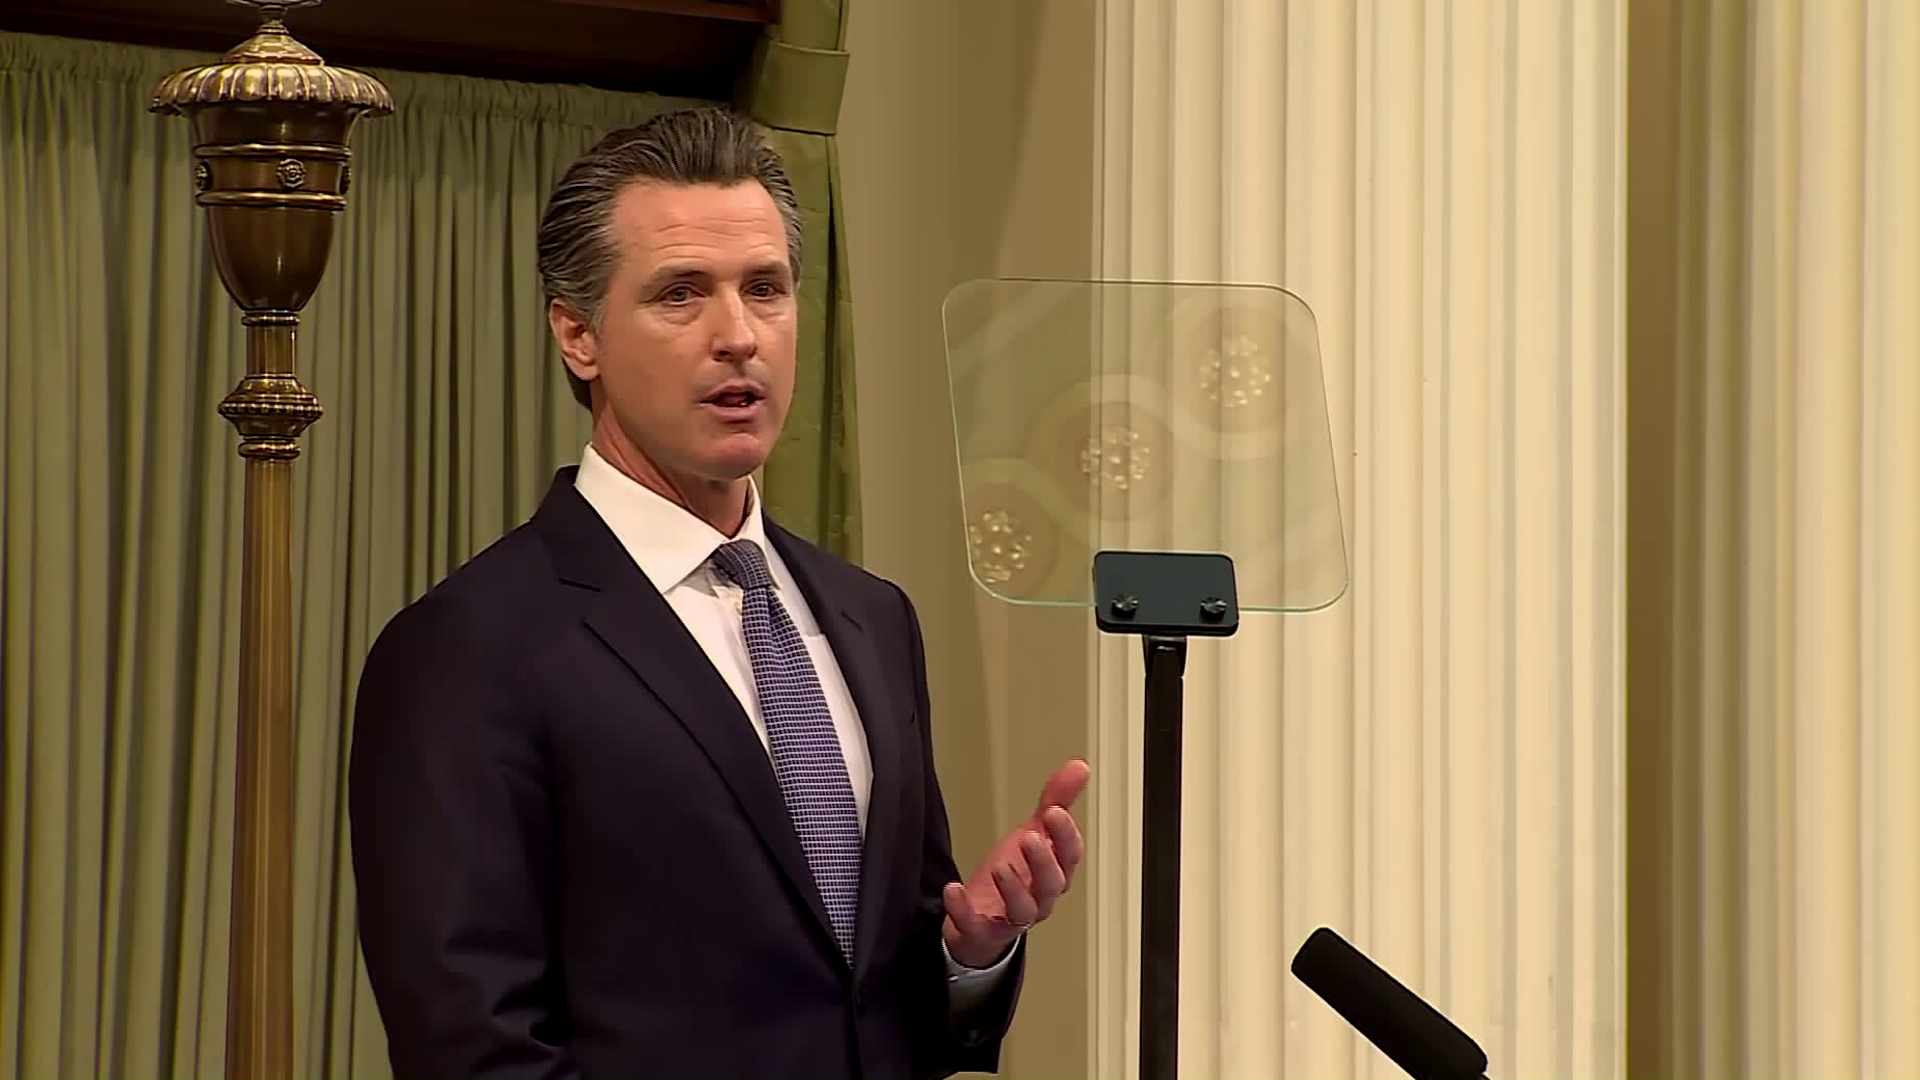 Gavin Newsom speaks at the State of the State address on Feb. 12, 2019. (Credit: Pool)